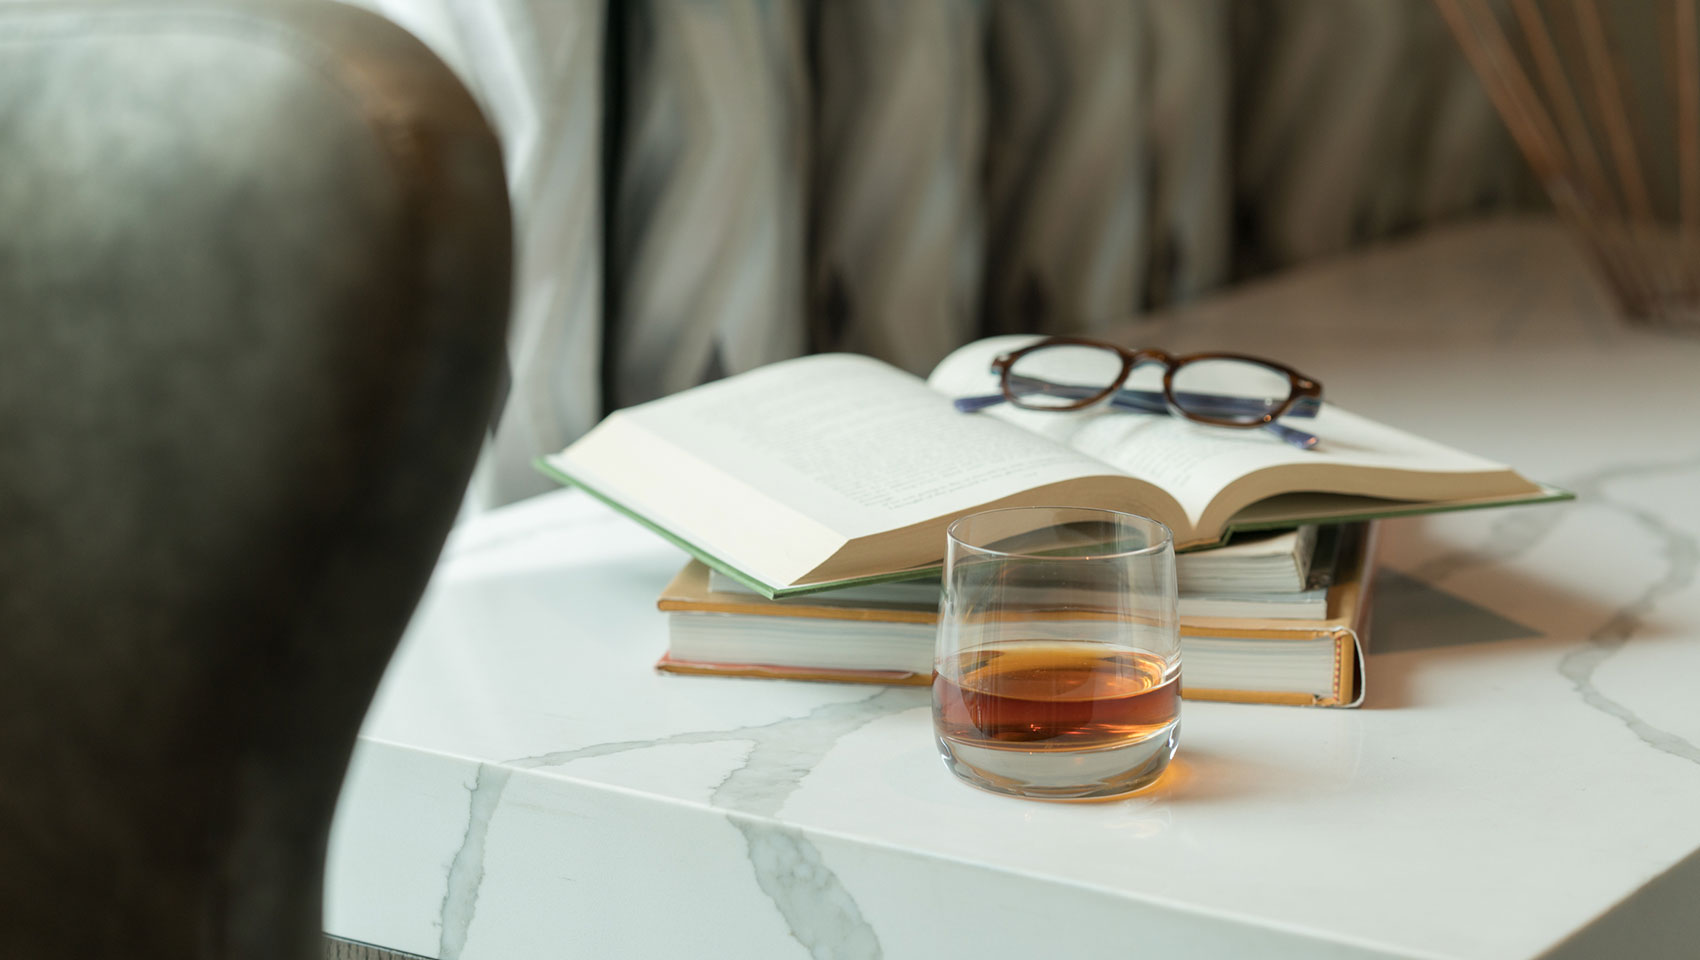 whiskey and glasses on a table